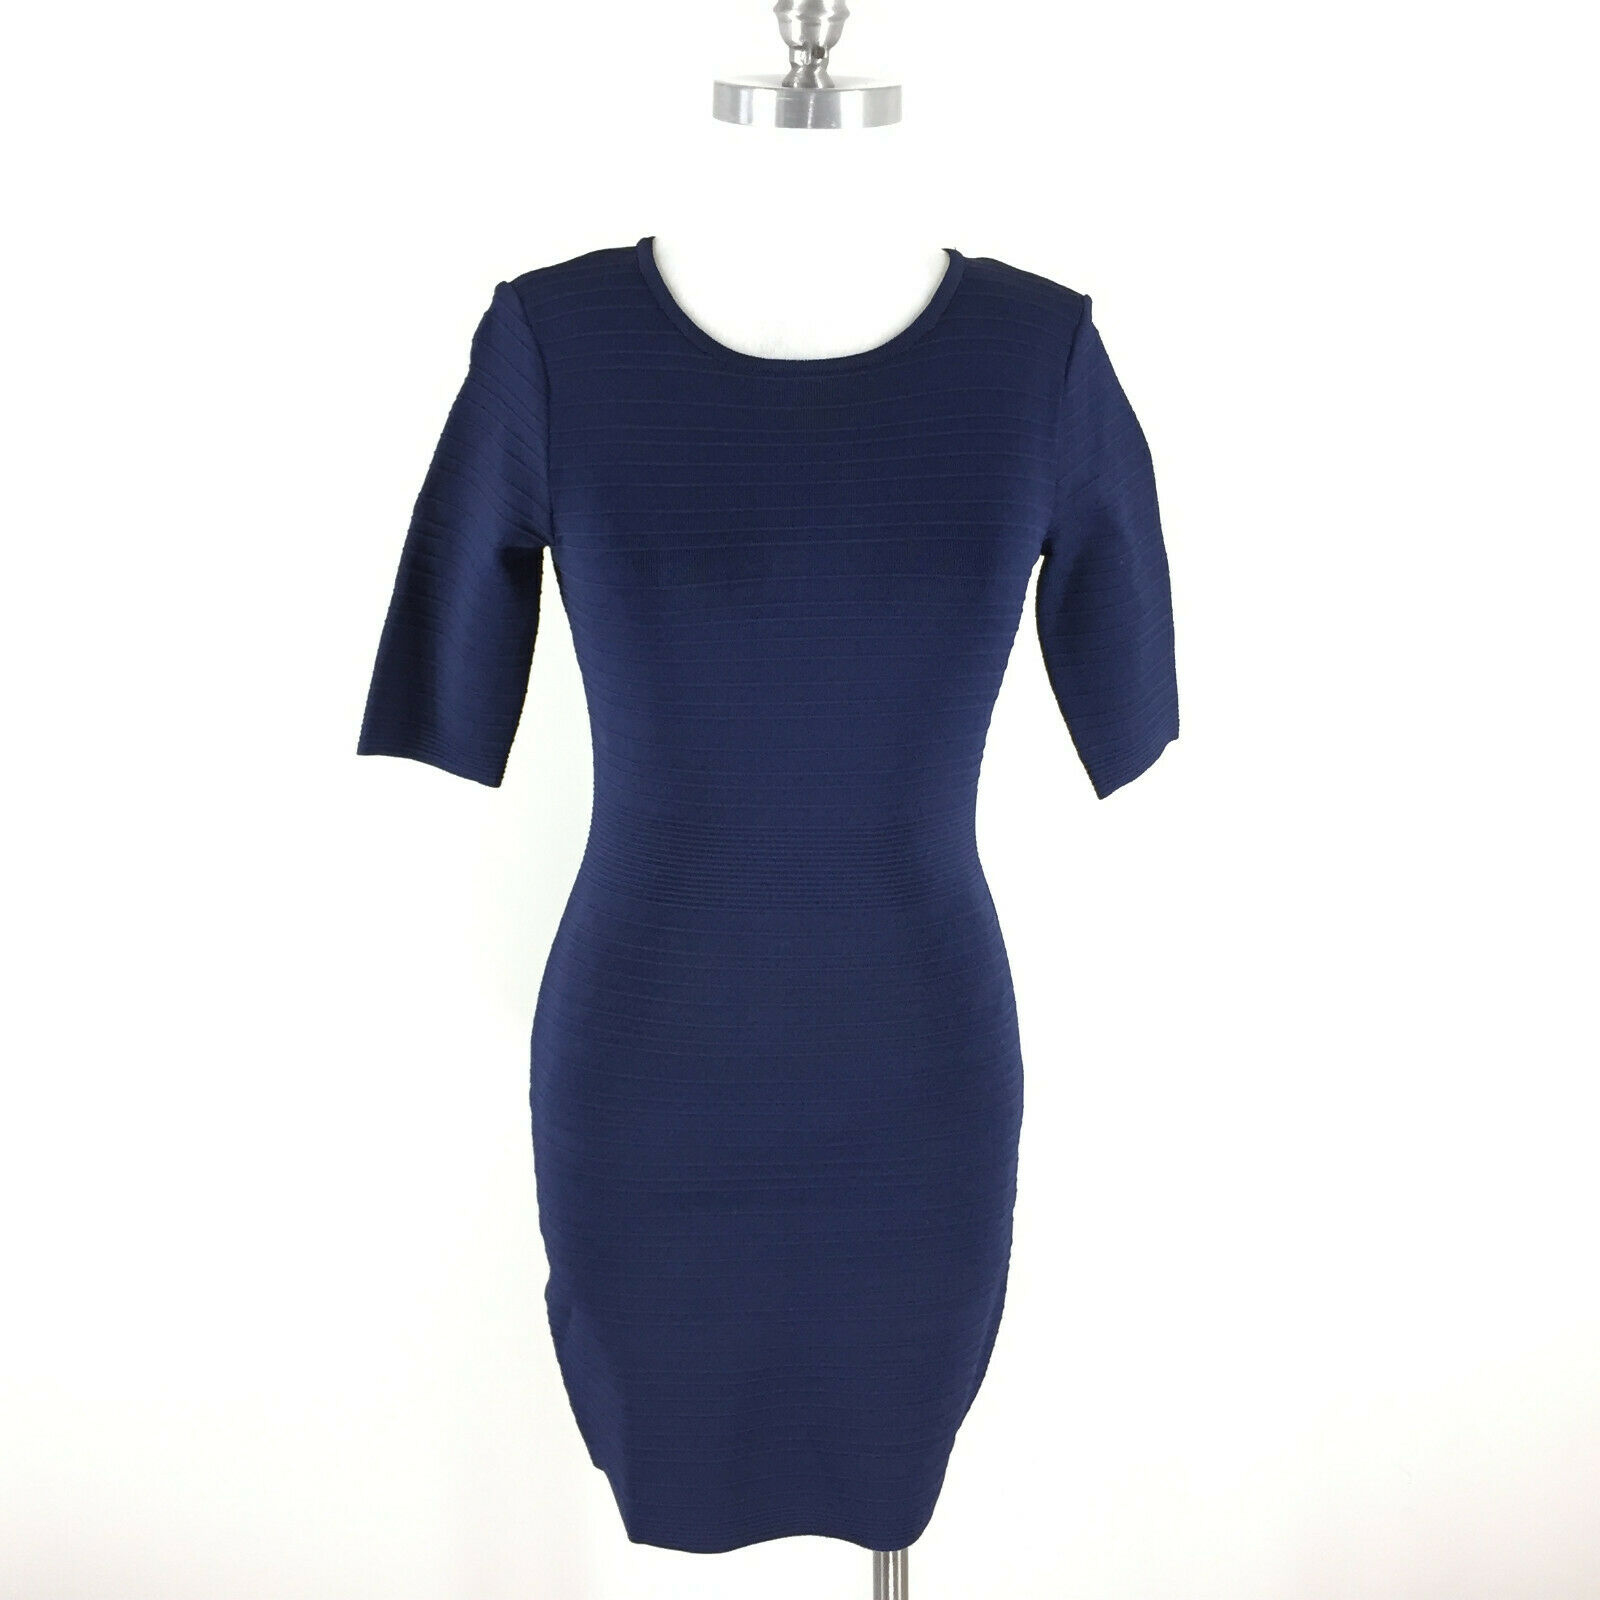 Cache S Navy Blau Ribbed Dress Bodycon Cocktail Formal Stretch Short sleeve